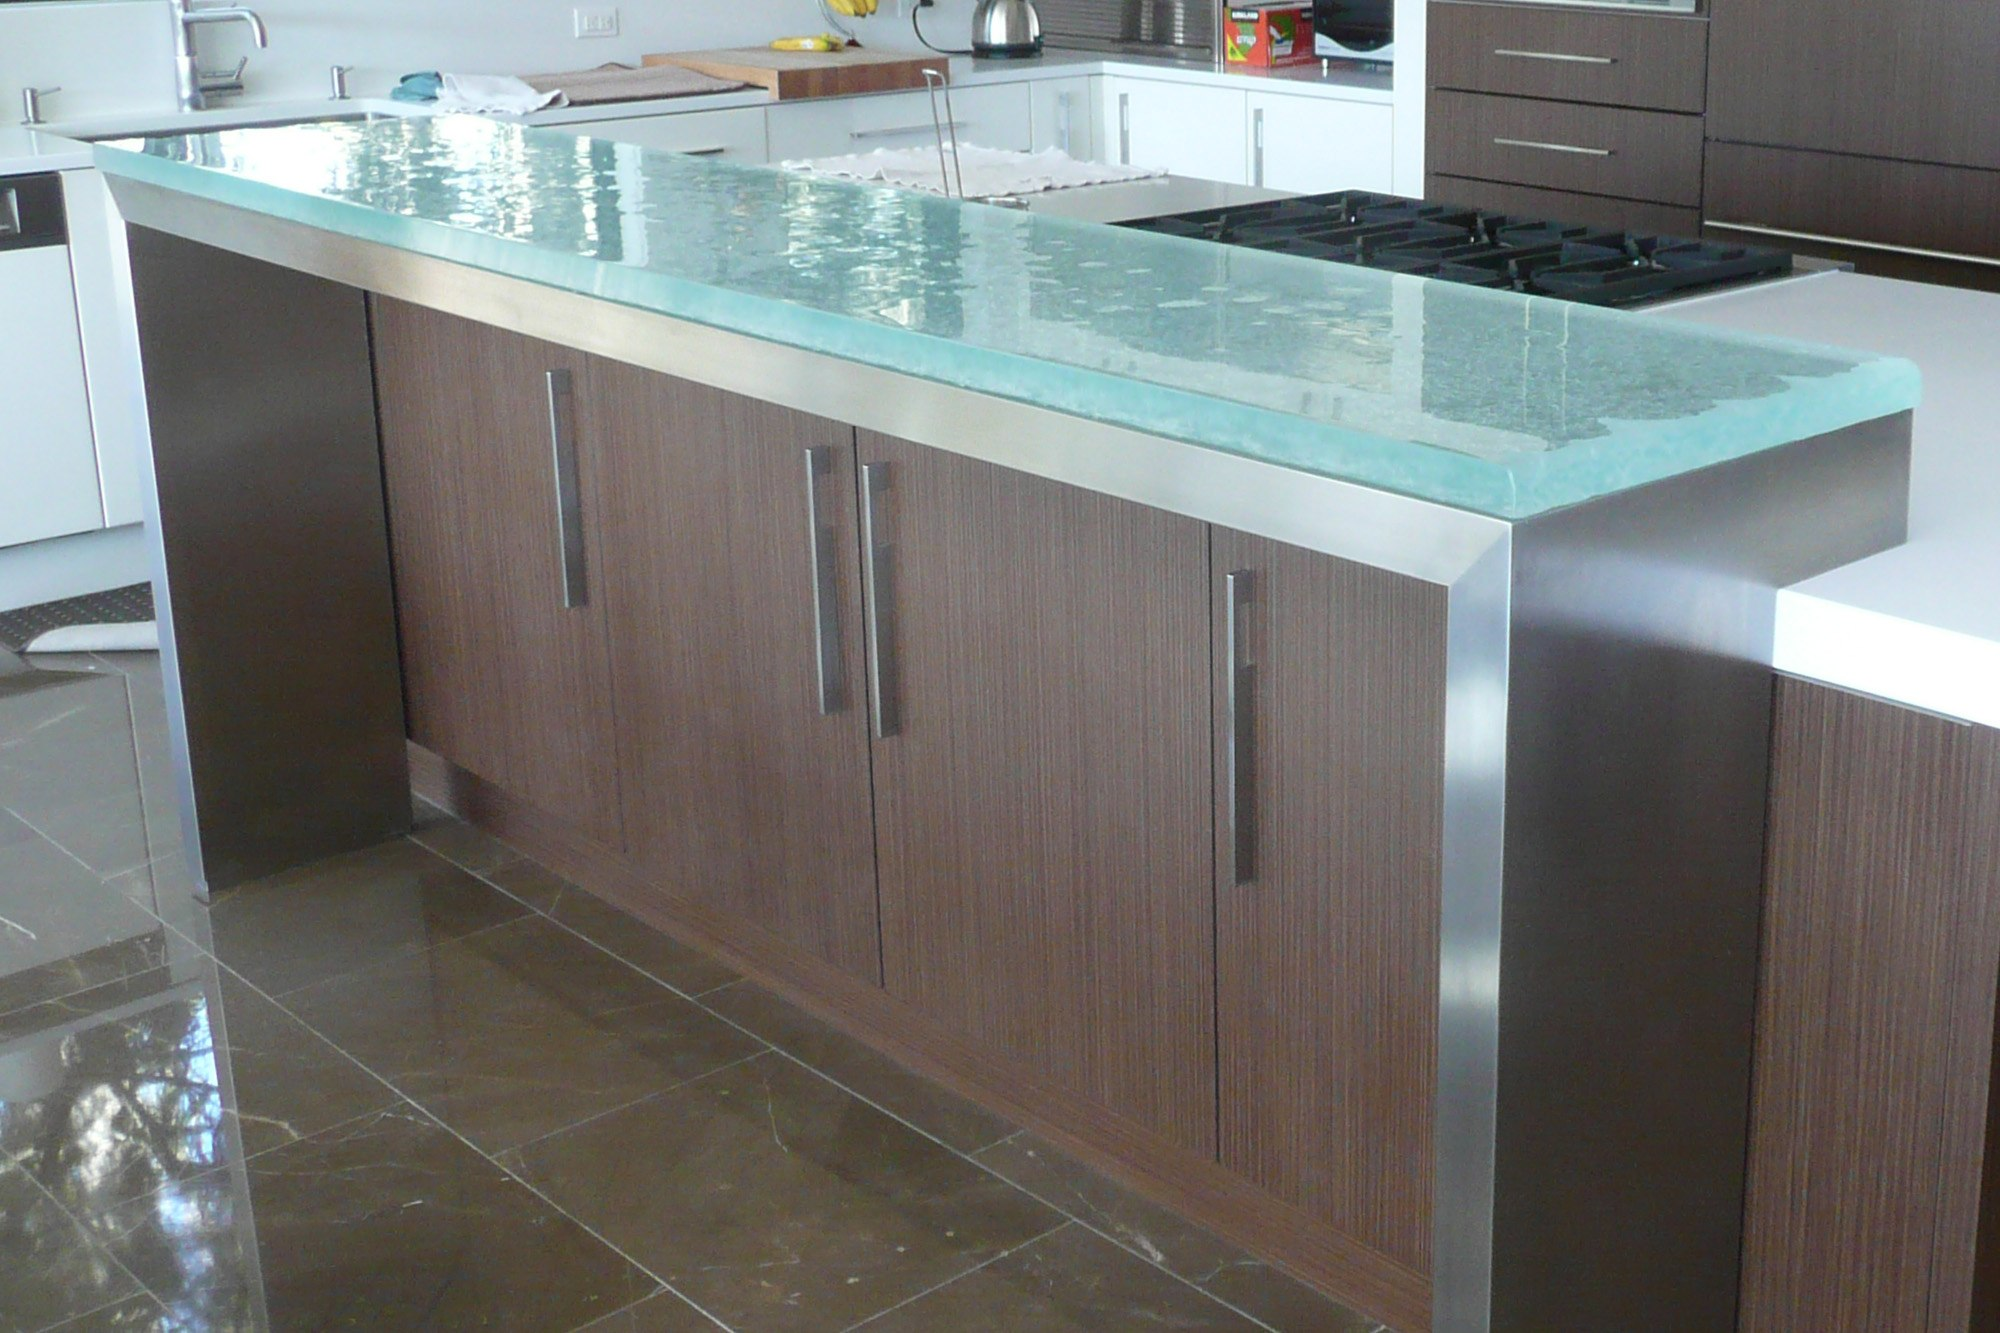 The Ultimate Luxury Touch For Your Kitchen Decor - Glass Countertops homesthetics (10)